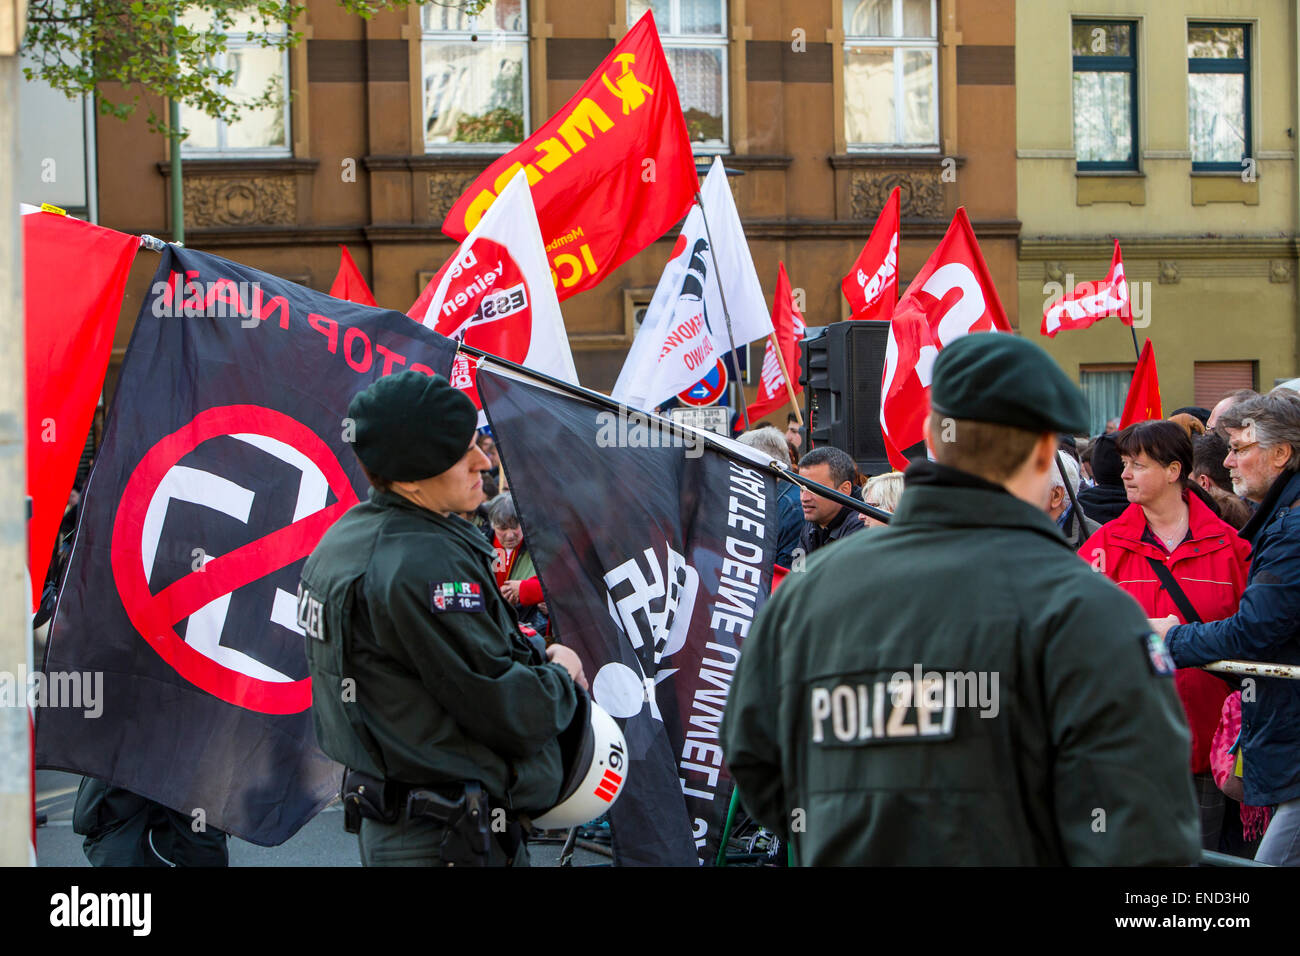 "Demonstration of right wing Neo-Nazi party ""Die Rechte"", a first of May, left wing counter-demonstrators, Essen, Stock Photo"